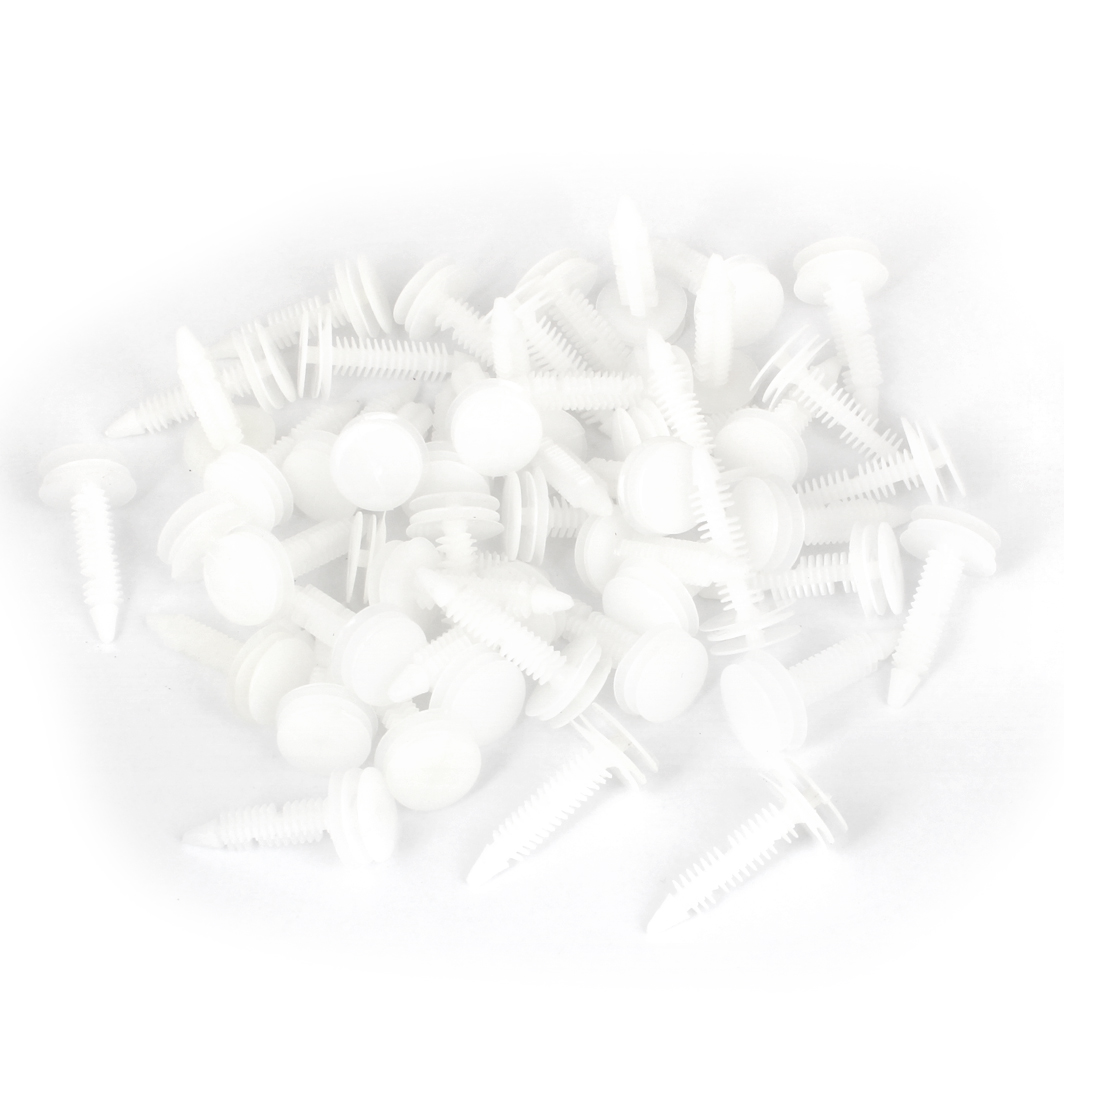 "50 Pcs Vehicle 0.3"" Hole White Door Plastic Replacement Rivets Fastener"